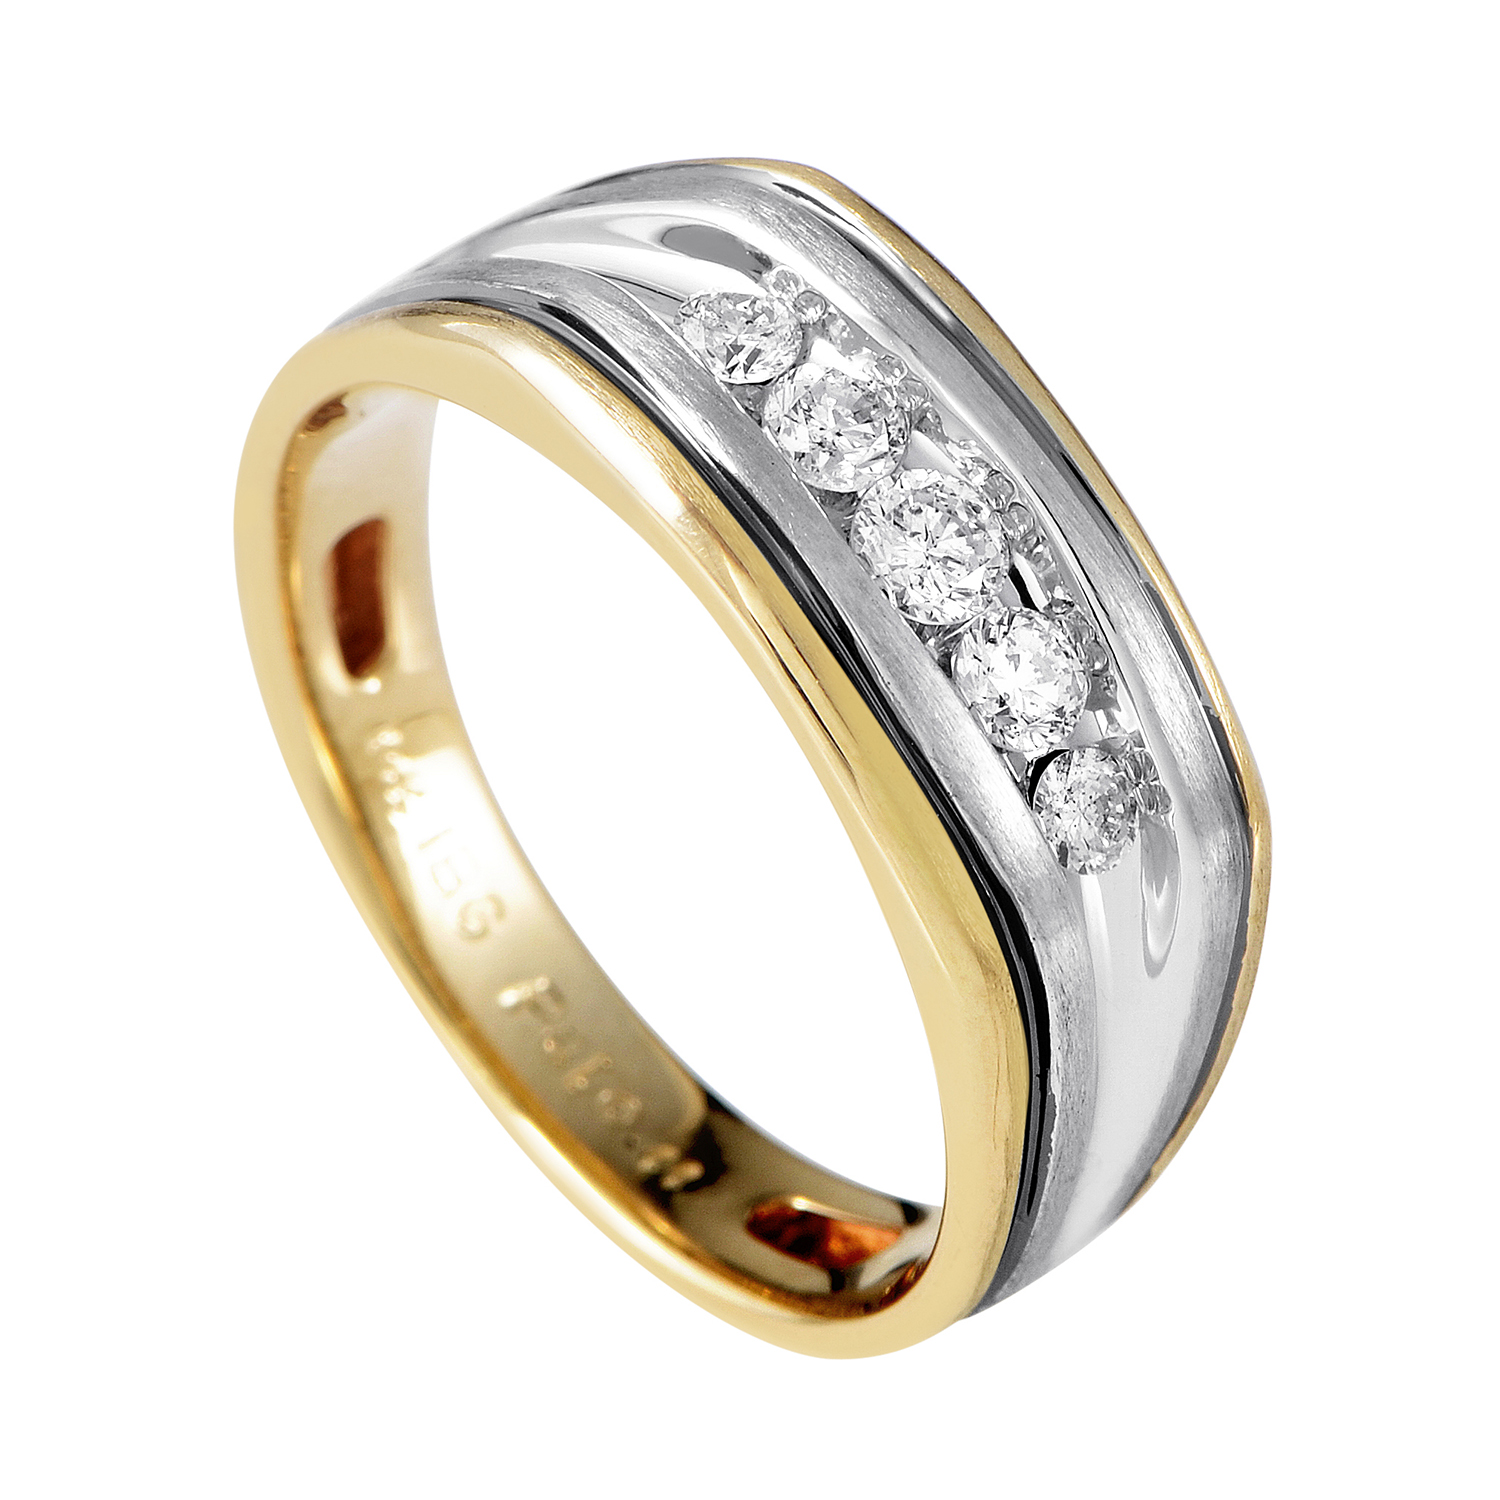 14K Multi-Tone Gold & Diamond Band Ring 63388XGW4X1